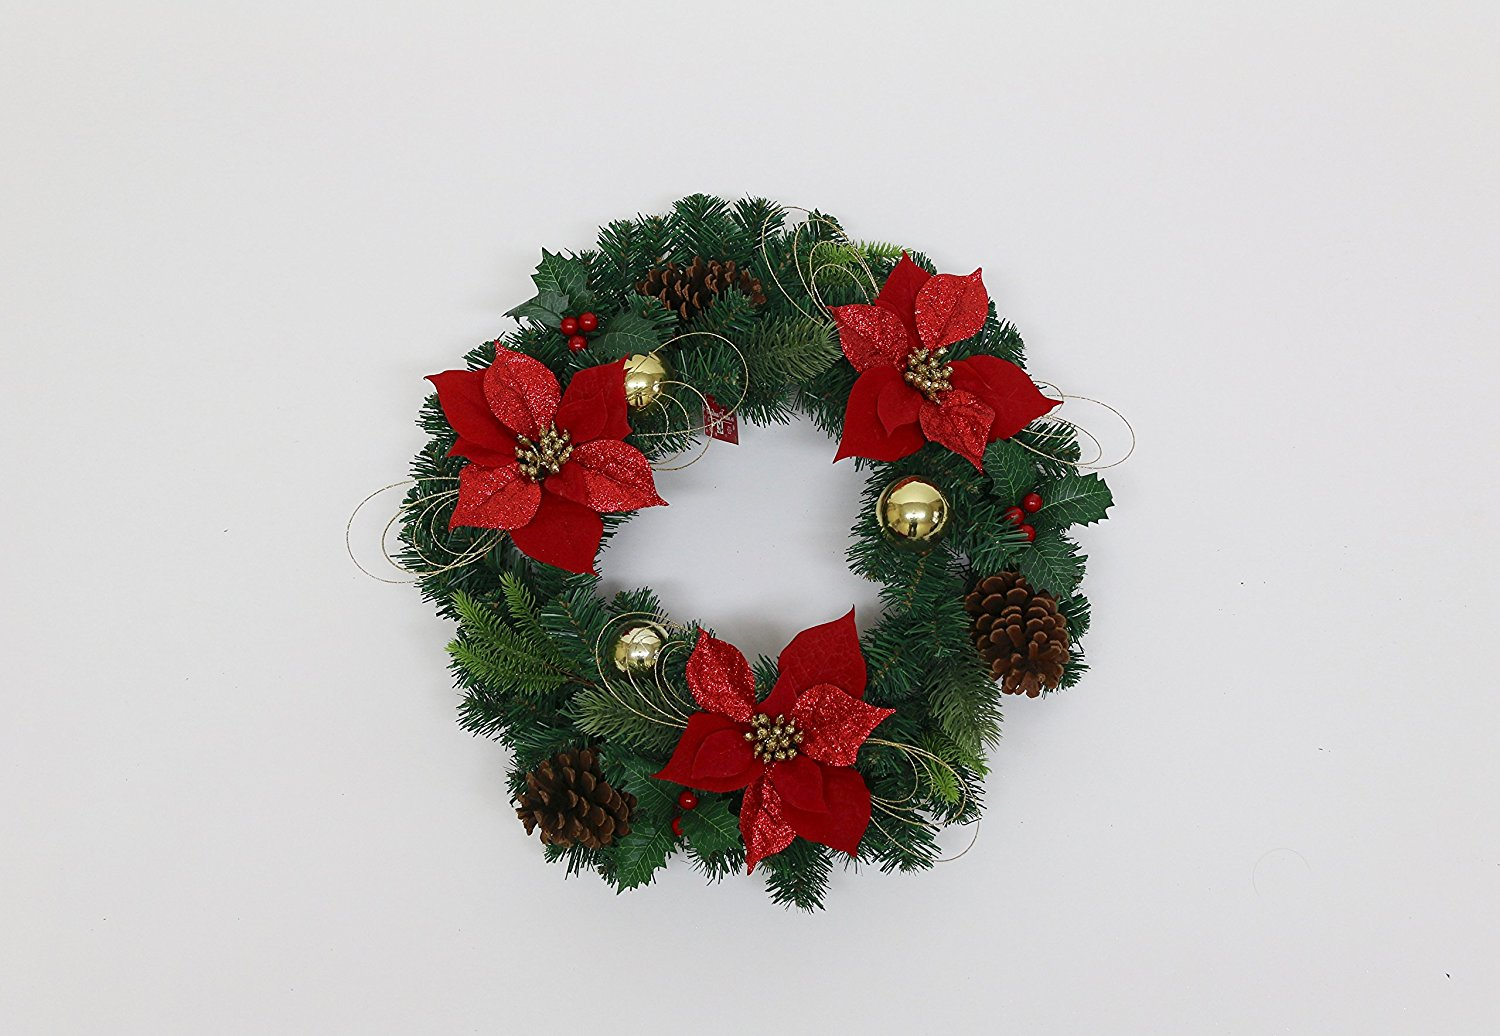 Christmas Treasures 24 Inch Pre-Decorated Christmas Wreath (Green, Red, Gold)